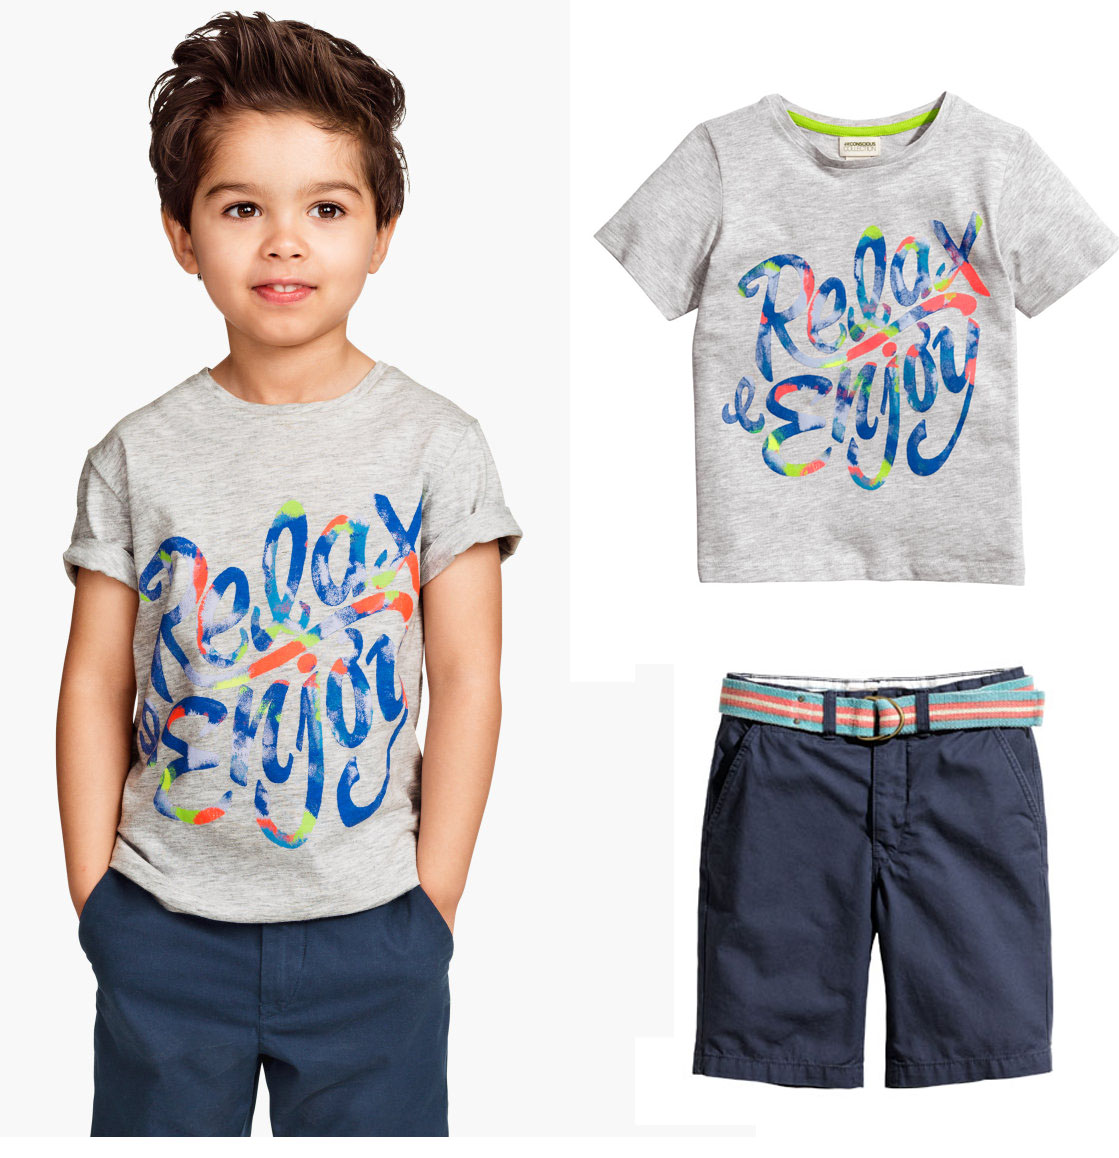 Compare Prices on Kids Apparel Brands- Online Shopping/Buy ...